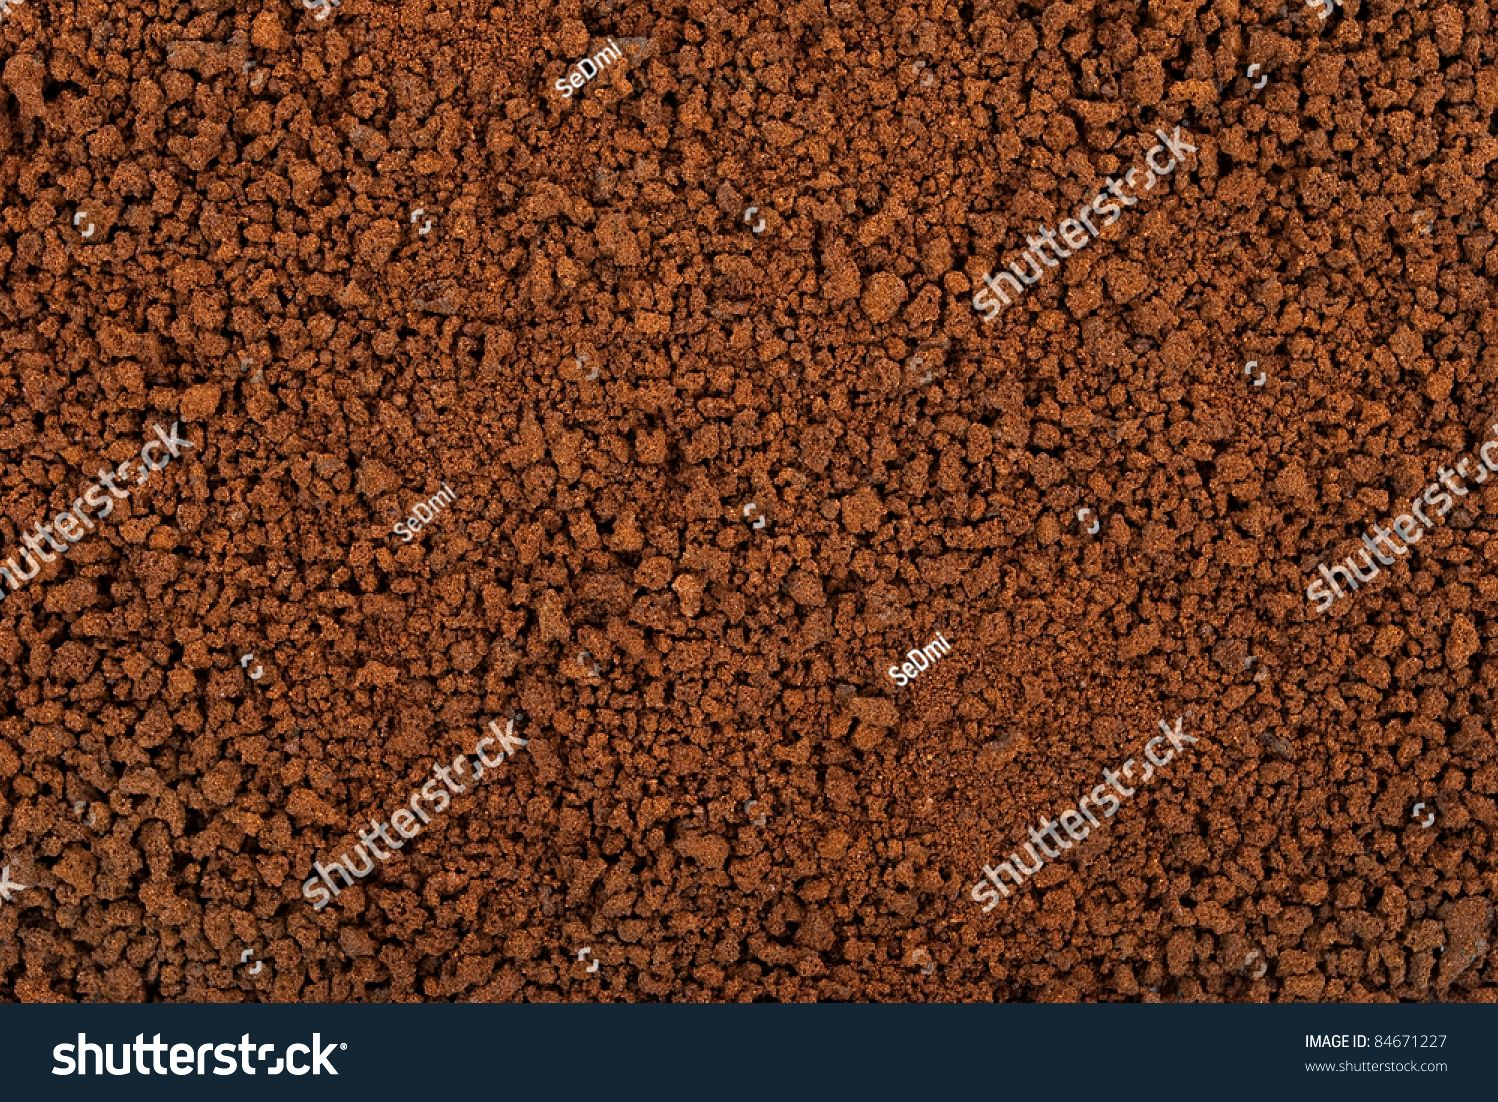 Freeze dried coffee stock photo - image: 37277020 license continues as before